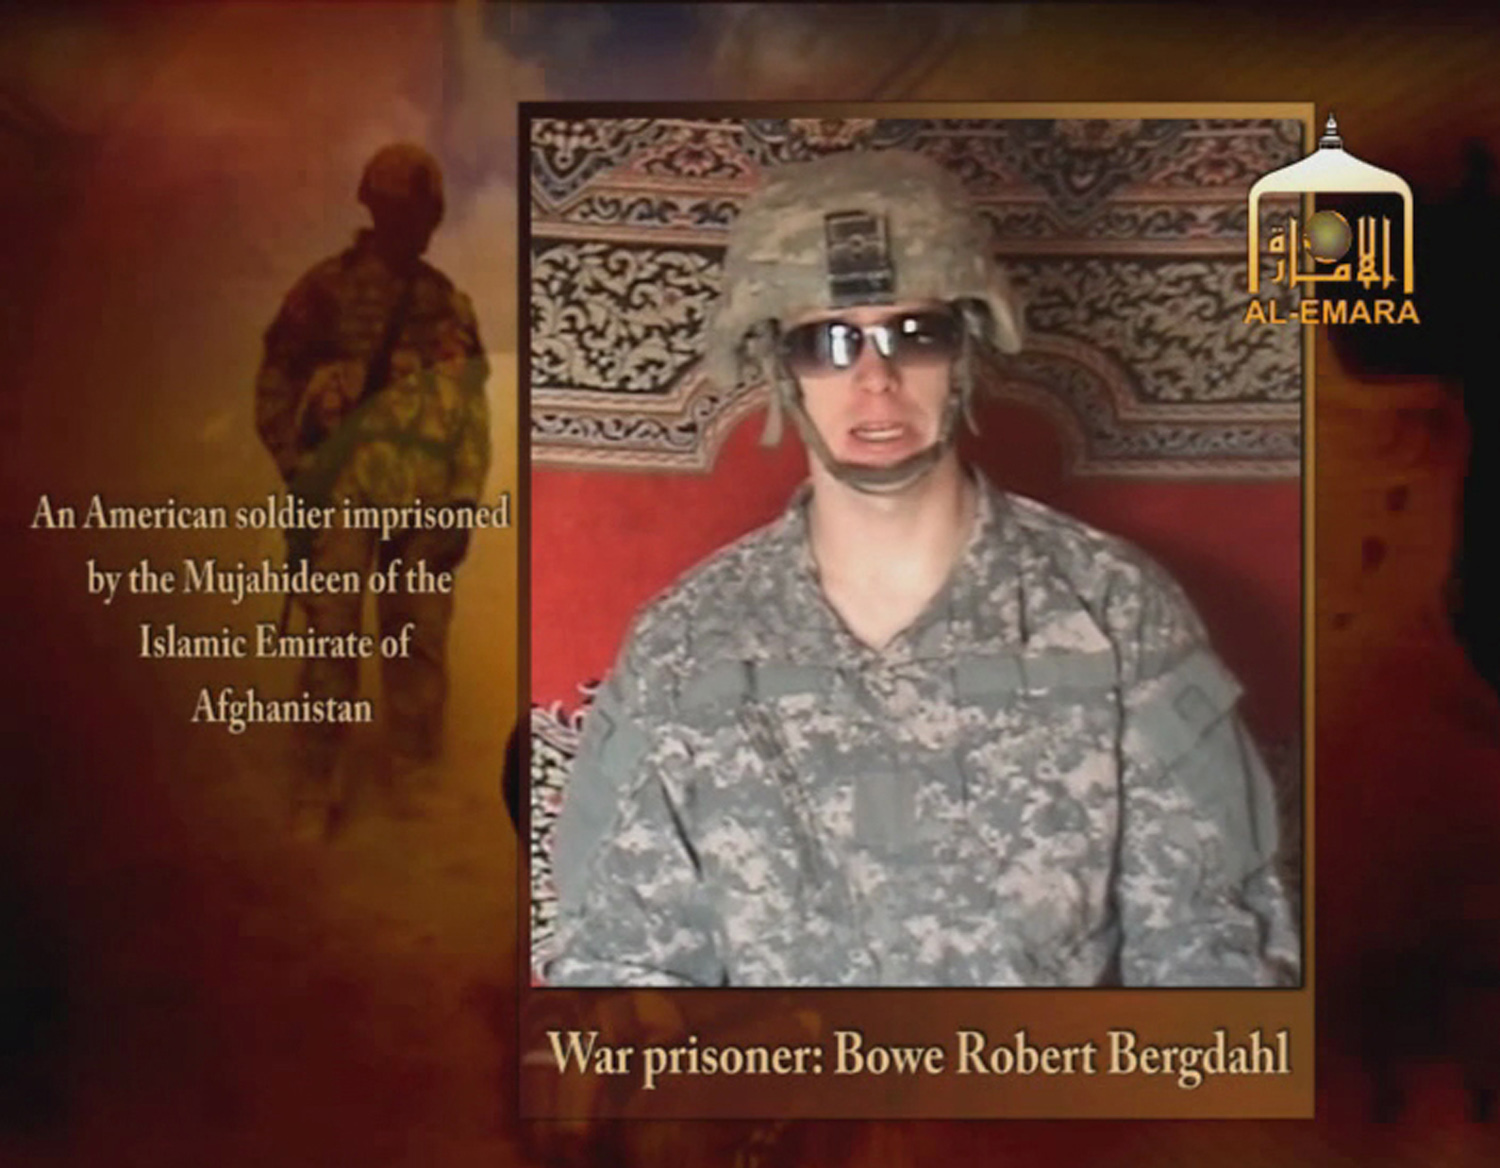 Undated image from video footage taken from a Taliban-affiliated website shows a man who says he is Private First Class Bowe R. Bergdahl, a U.S. soldier captured by the Taliban in southeastern Afghanistan in late June. The Afghan Taliban said on December 25, 2009 that they had issued a new video tape of Bergdahl and added that in it he asks his government to take part in a prisoner exchange deal. REUTERS via Reuters TV (CONFLICT CIVIL UNREST) FOR EDITORIAL USE ONLY. NOT FOR SALE FOR MARKETING OR ADVERTISING CAMPAIGNS - RTR28CBI